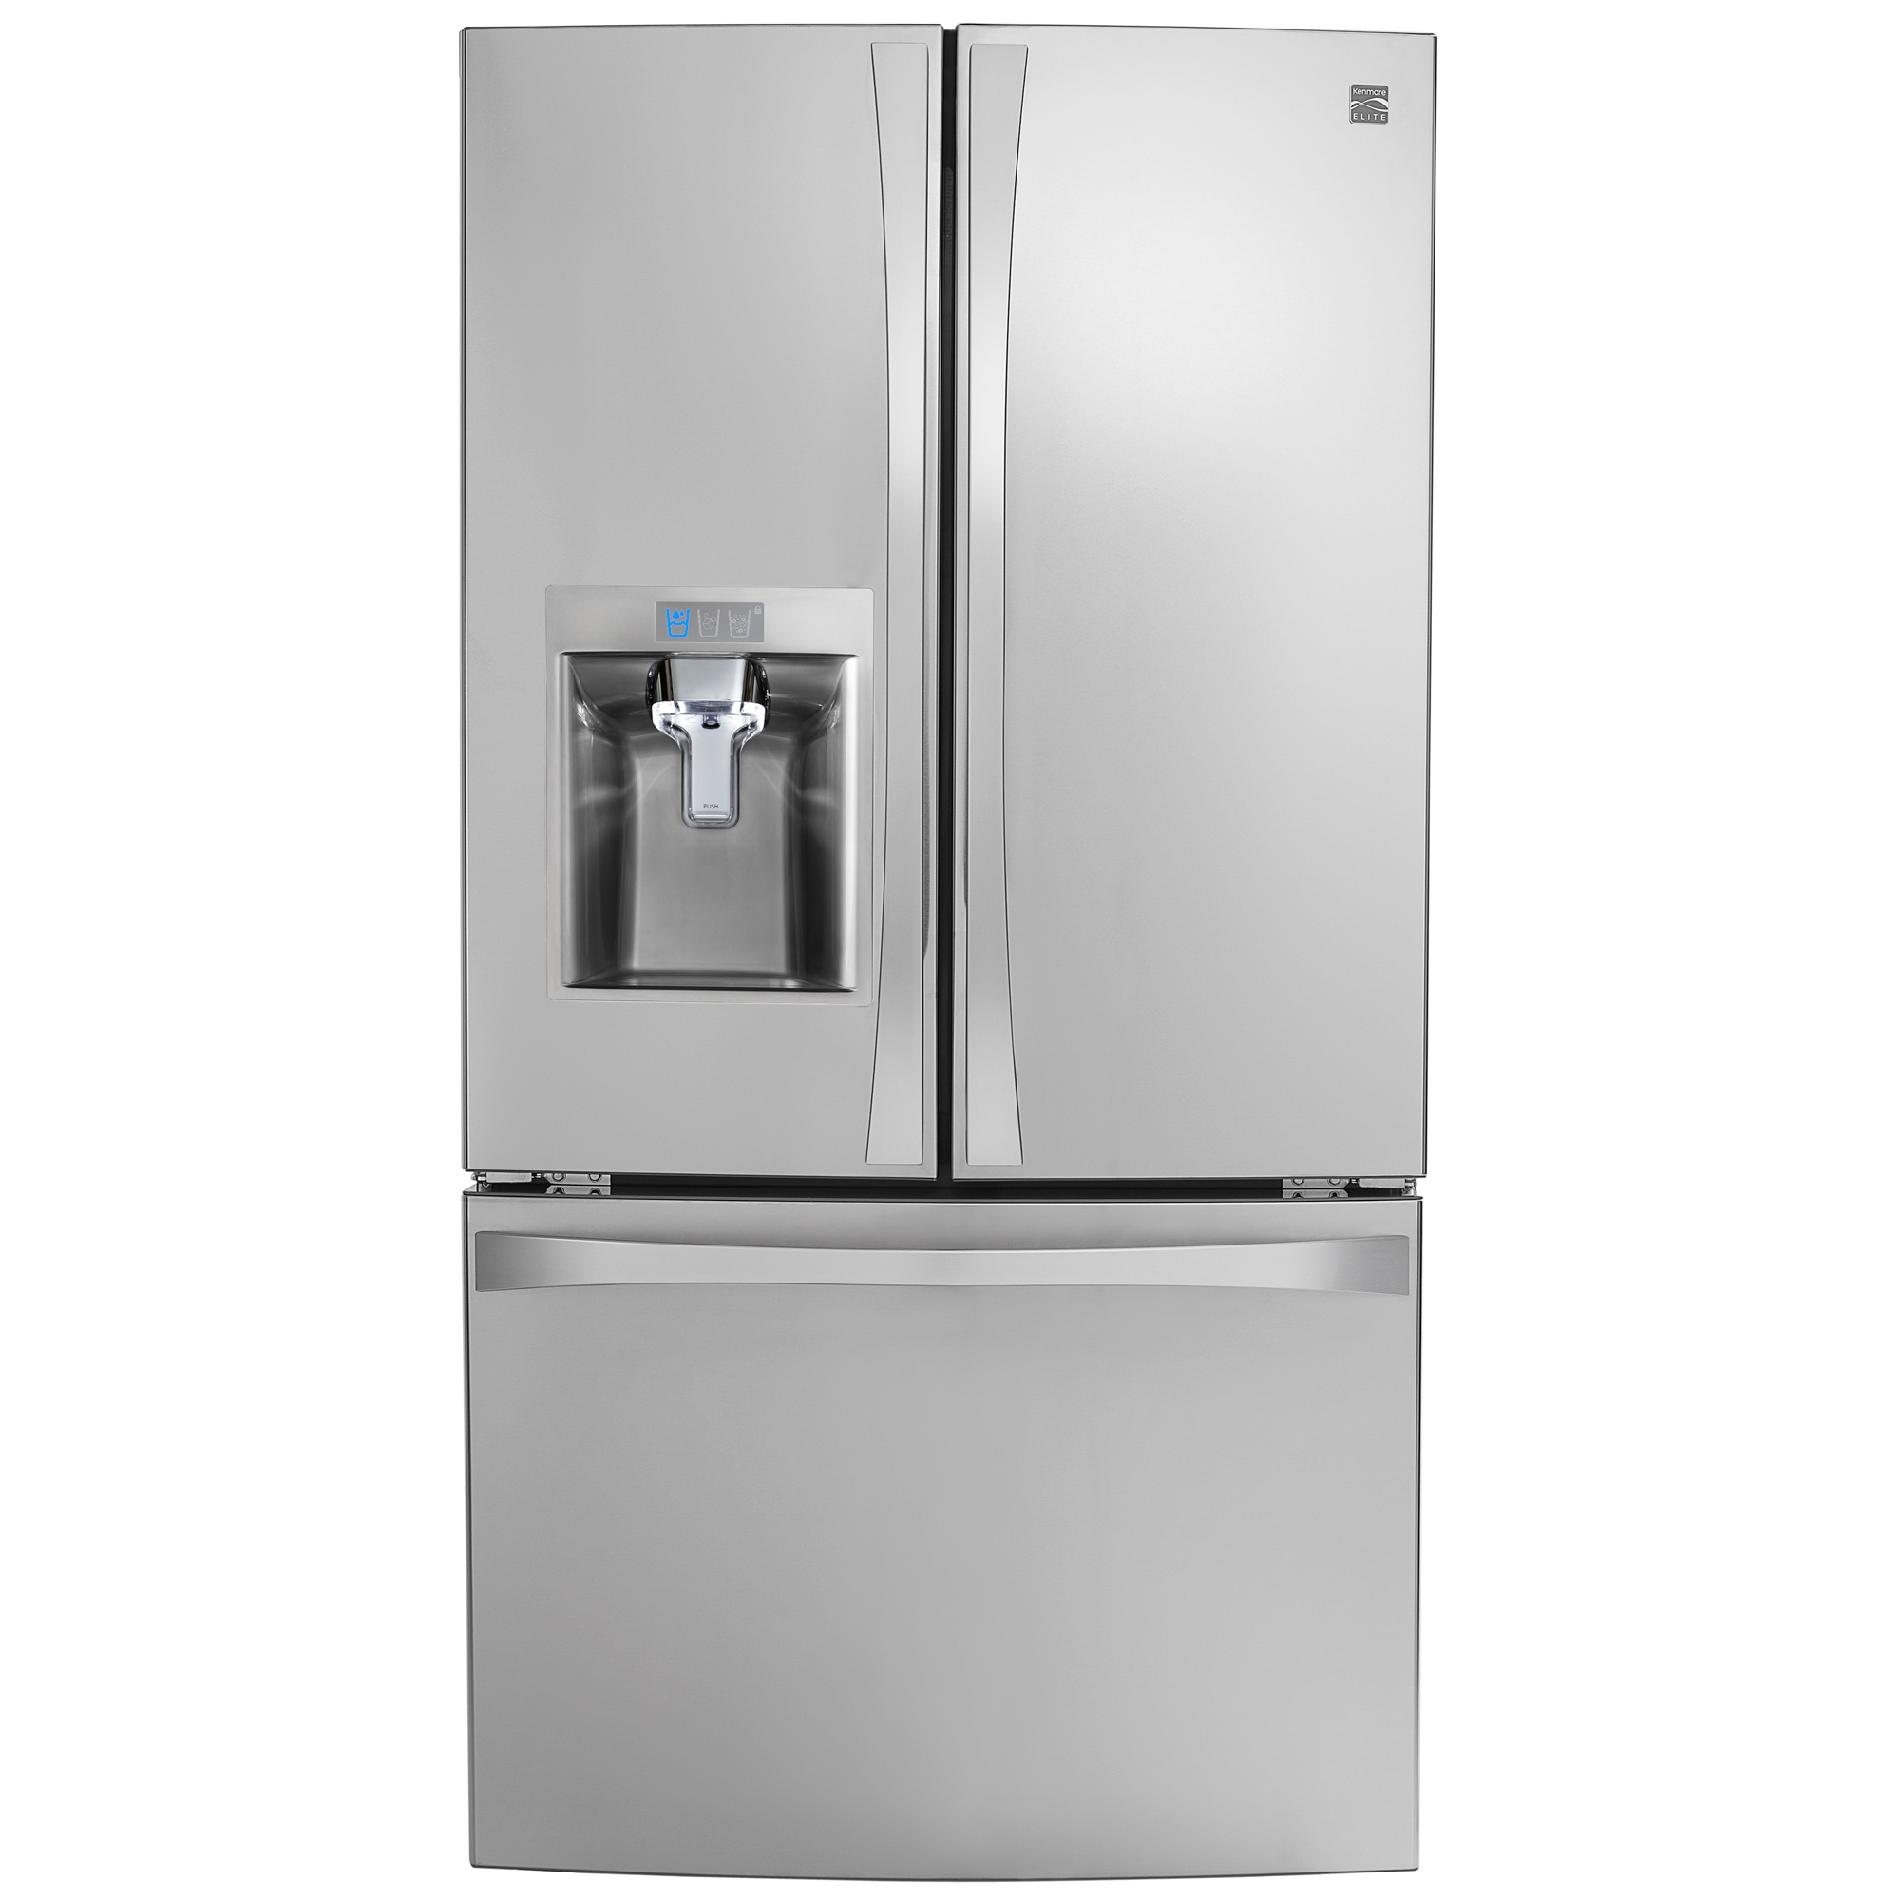 74043-23-7-cu-ft-French-Door-Bottom-Freezer-Refrigerator%E2%80%94Stainless-Steel